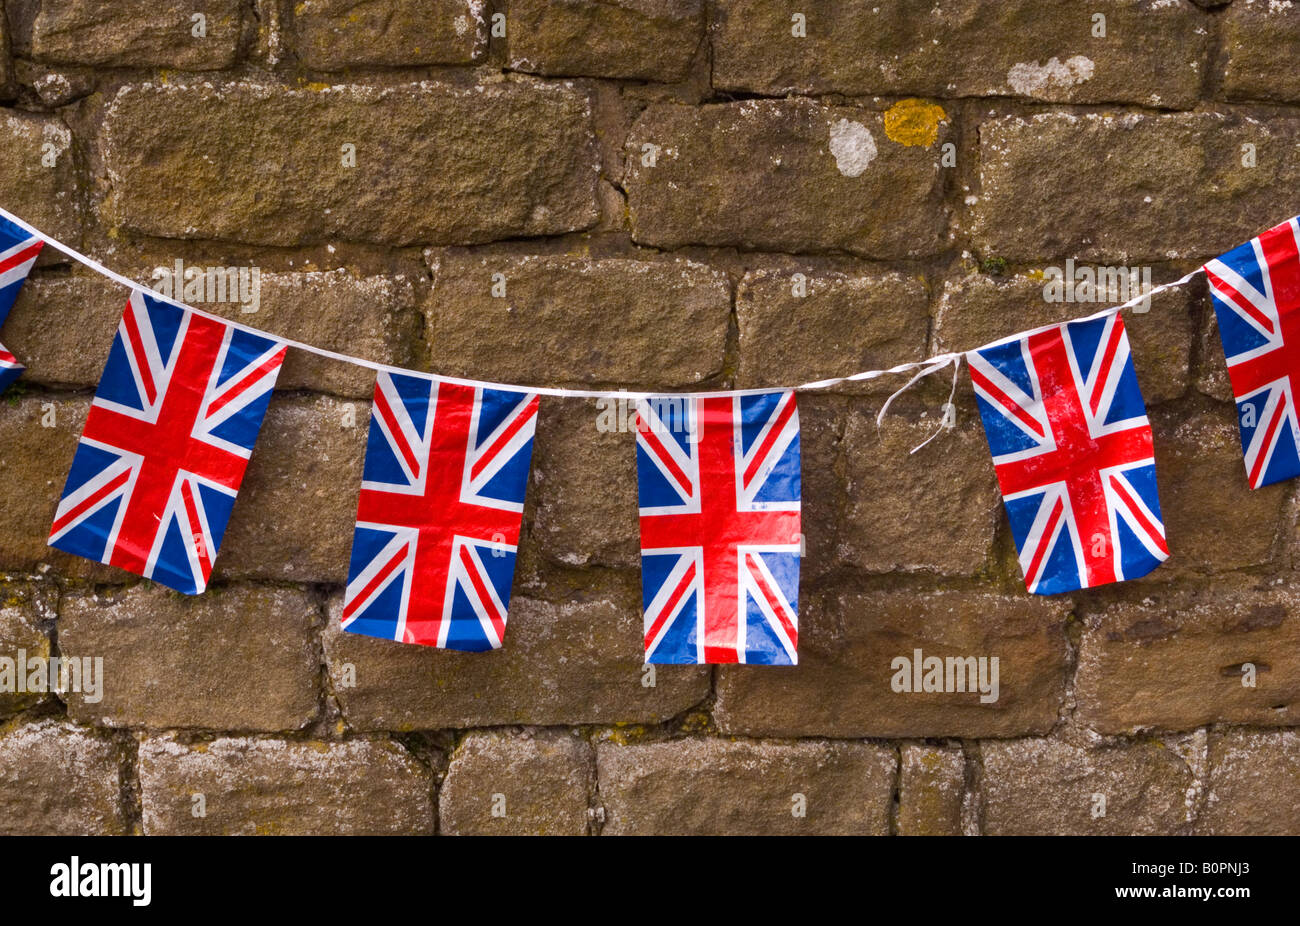 Close up view of Union Jack bunting flags with a stone wall behind - Stock Image